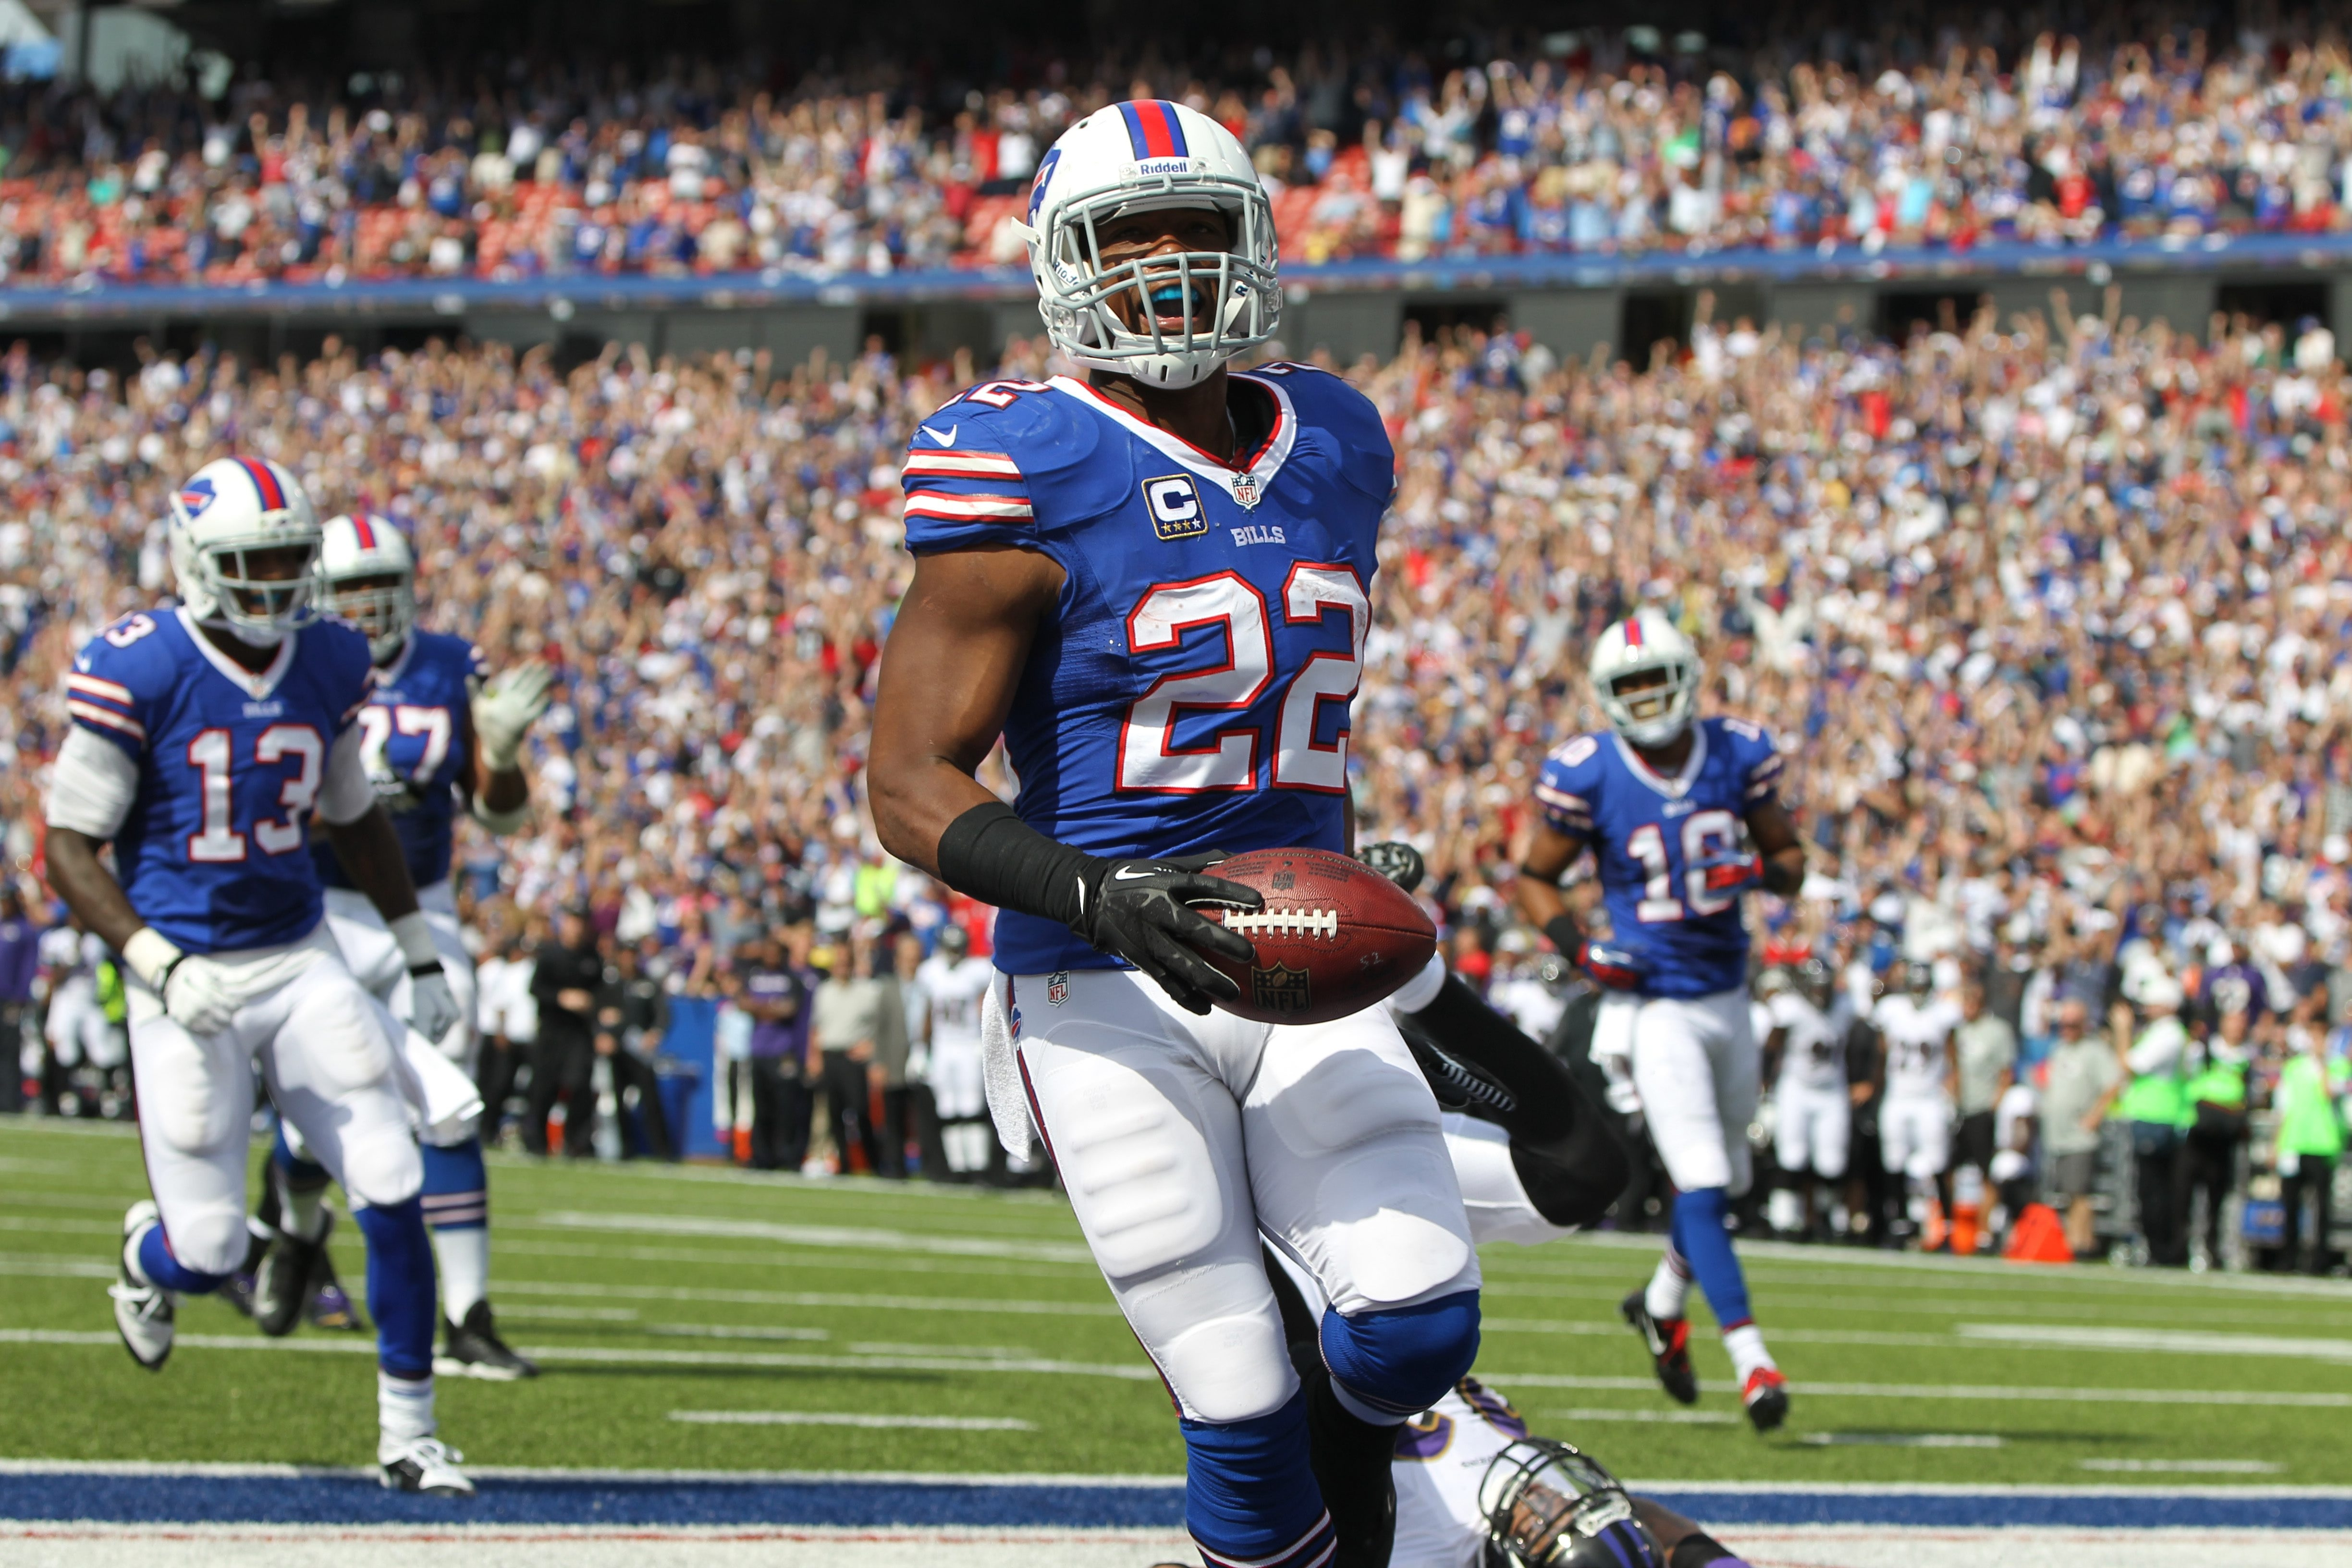 Bills running back Fred Jackson (22) runs for a touchdown over Baltimore Ravens cornerback Jimmy Smith (22) in the second quarter